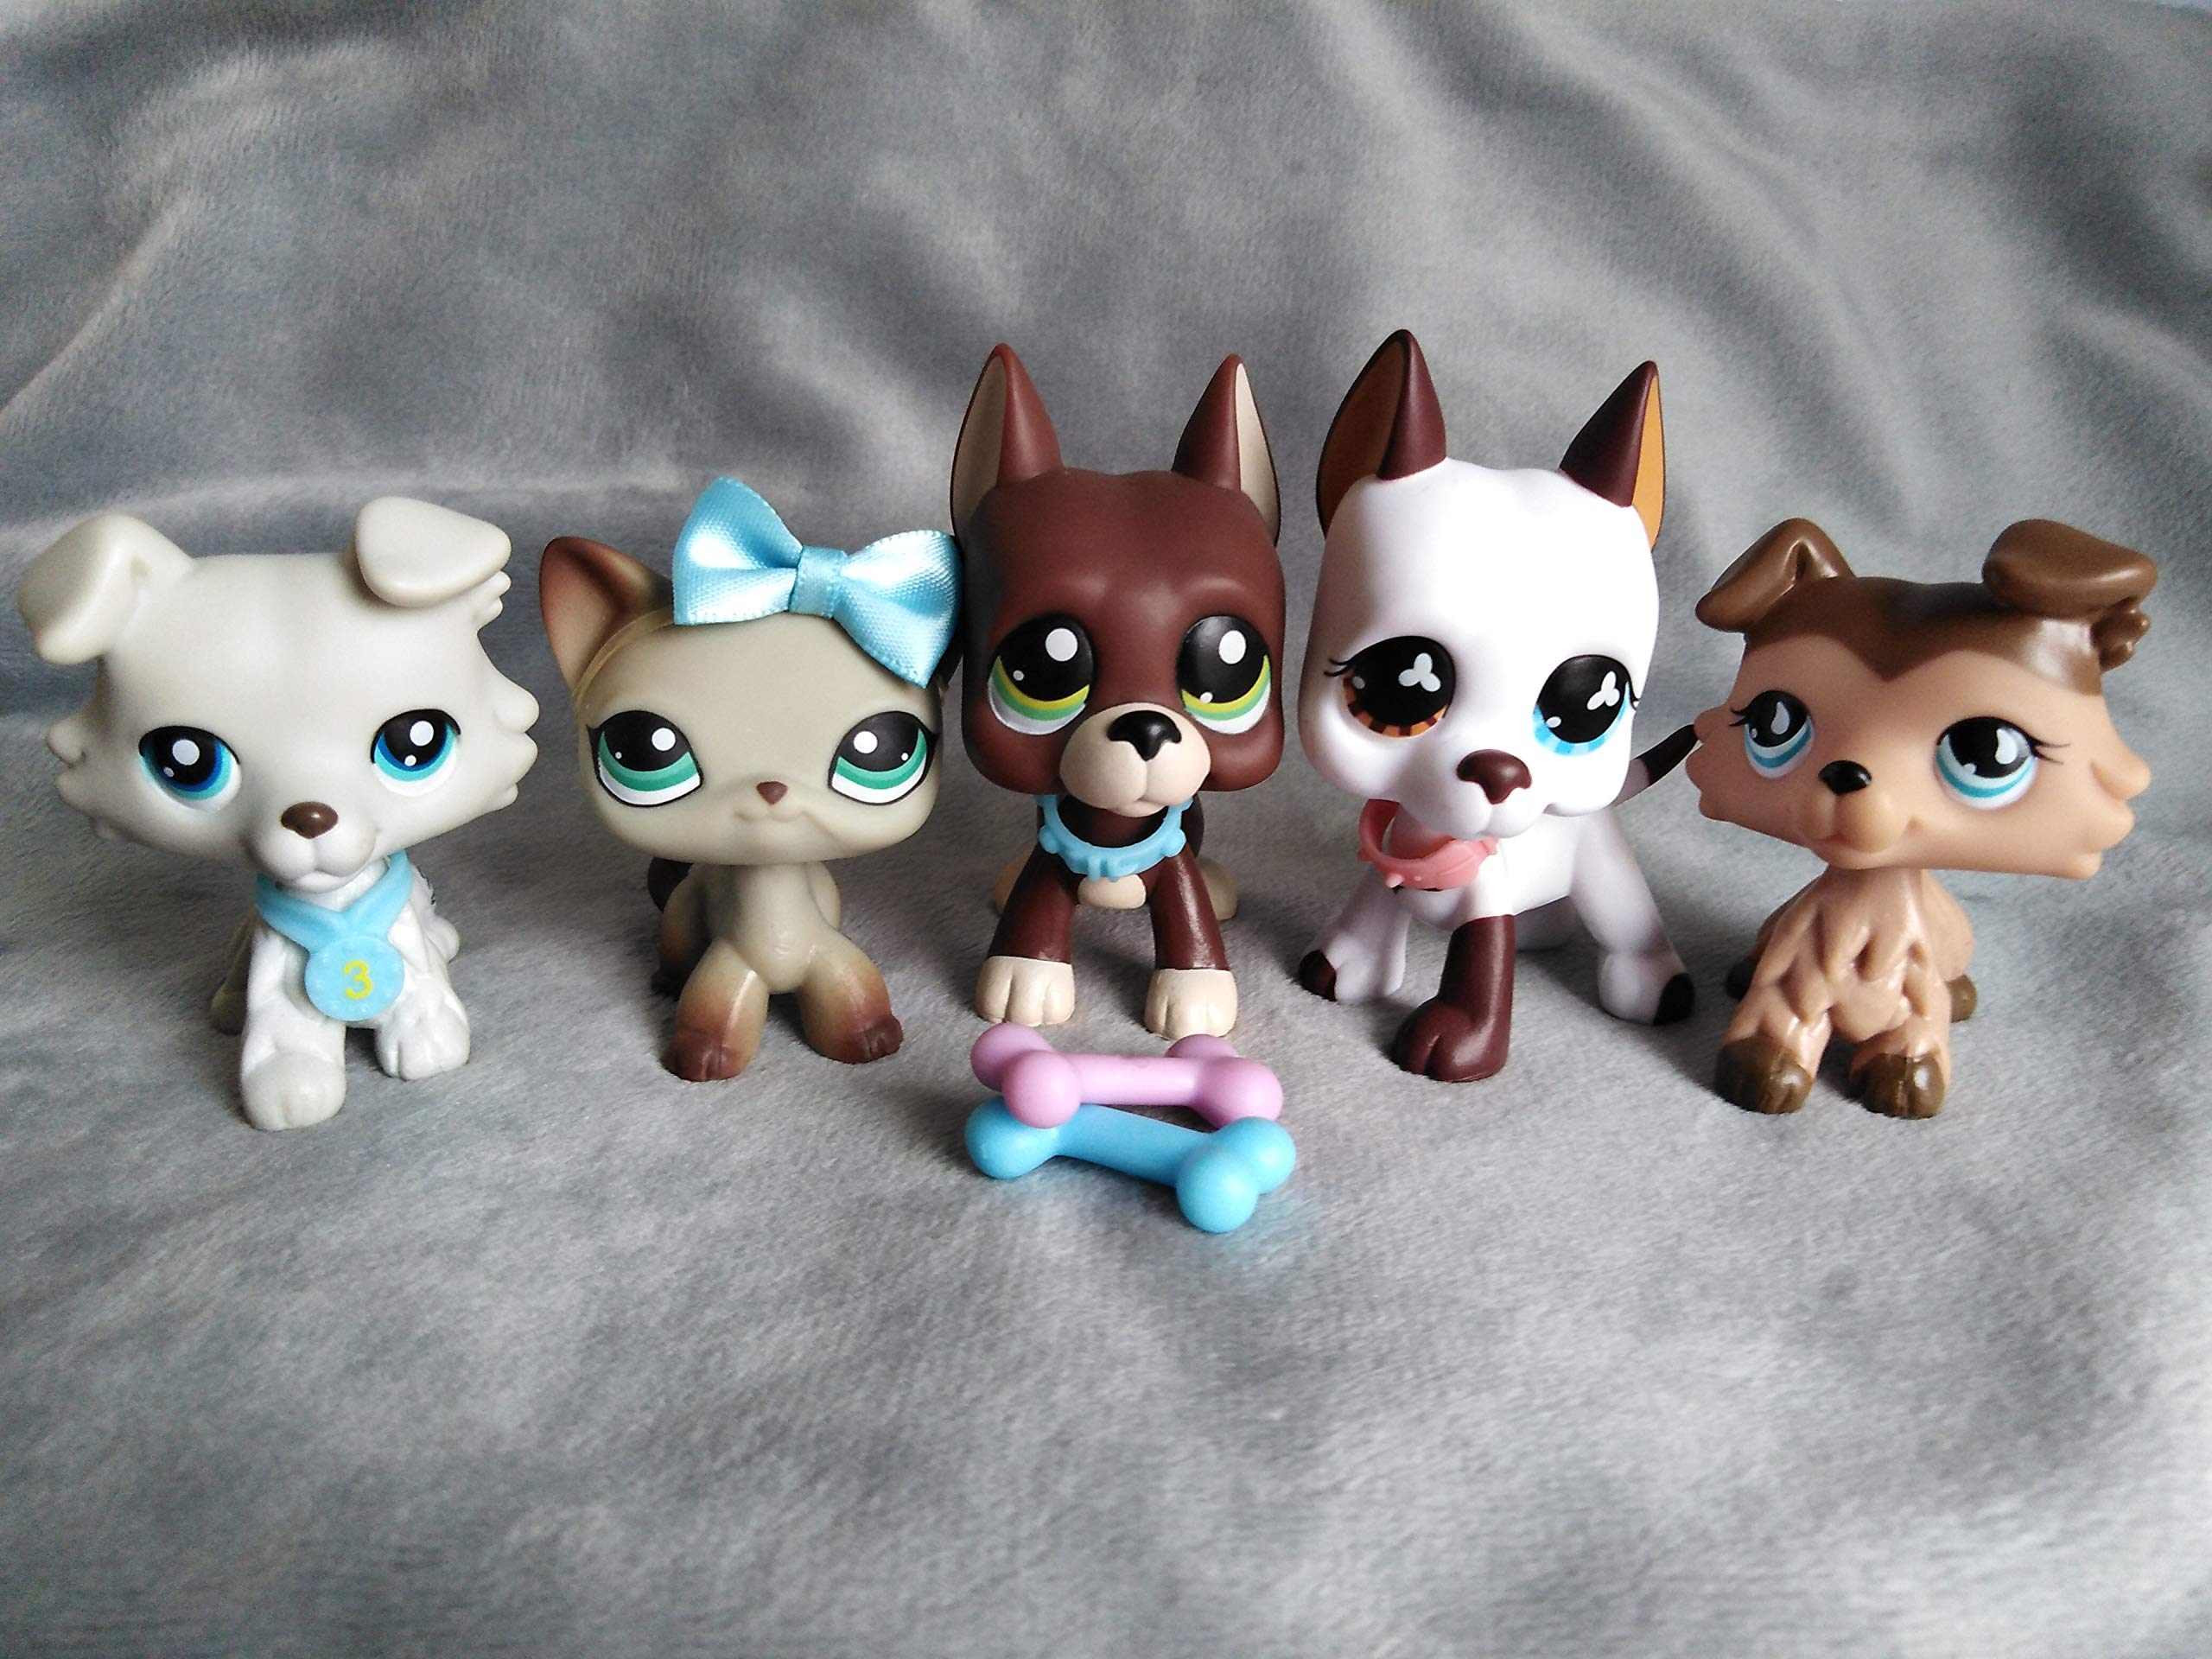 Emilys Doll lps Pets 5pcs lps Short Hair Cat Great Dane Dog Collie #1519#57#391#363#893 Magnet Foot Clear Peg with lps Accessries lo Kids Gift